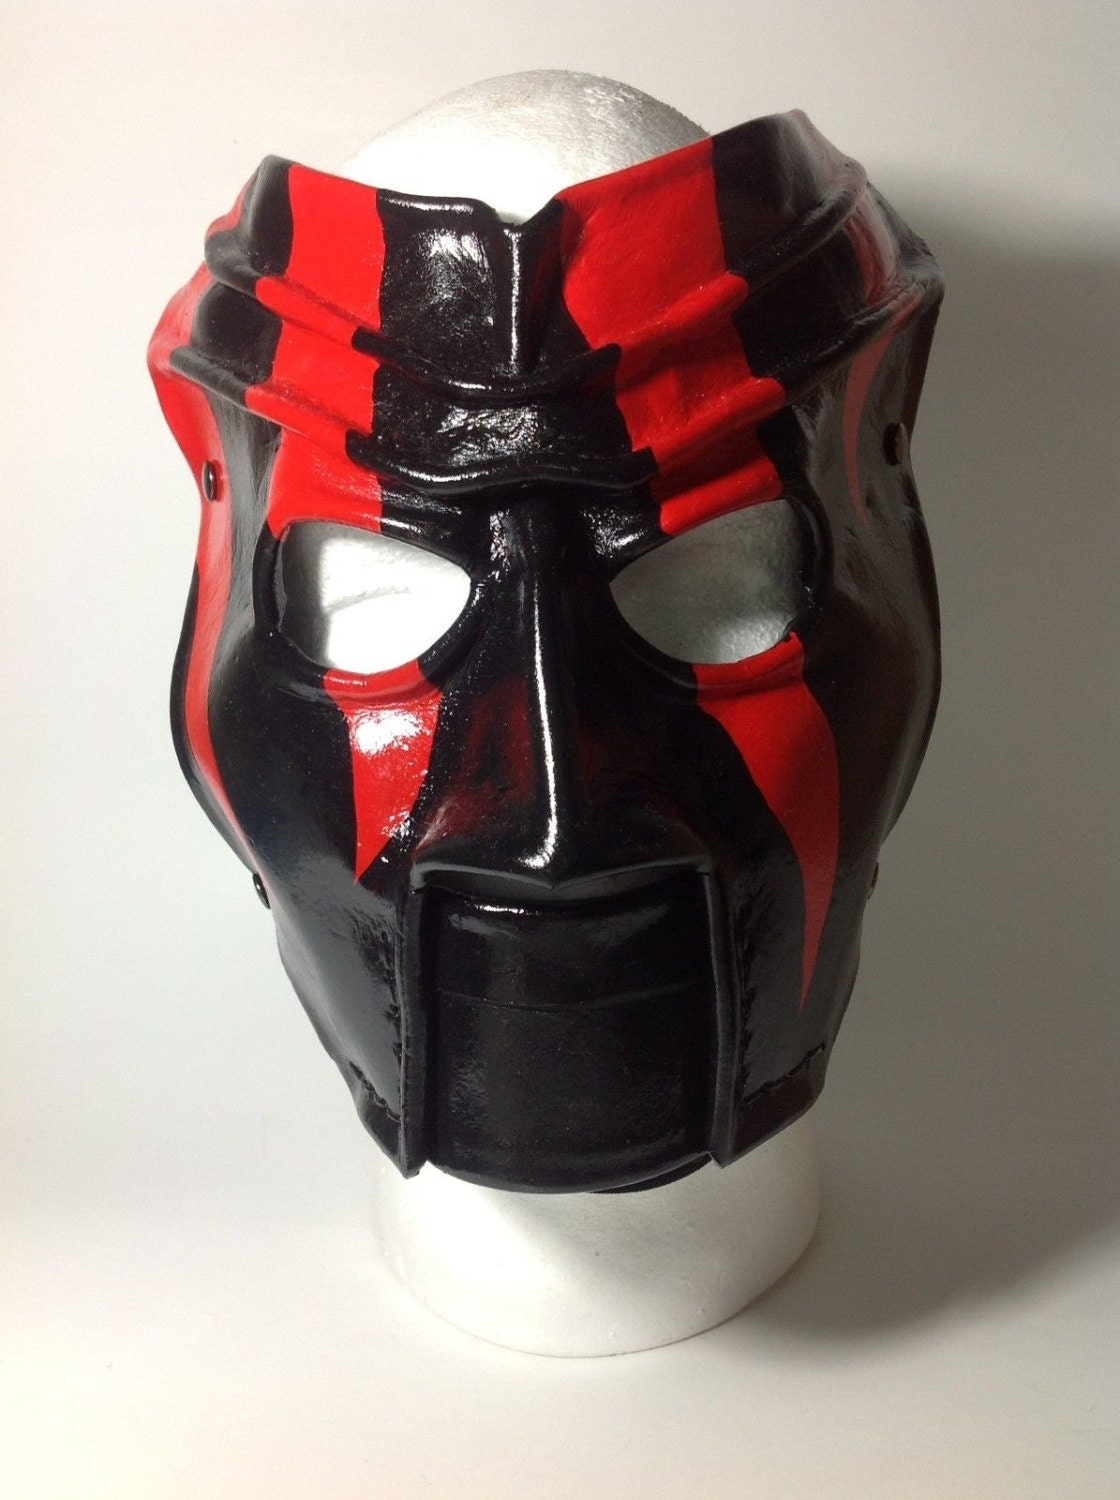 leather kane mask replica 20002002 version 3 halloween